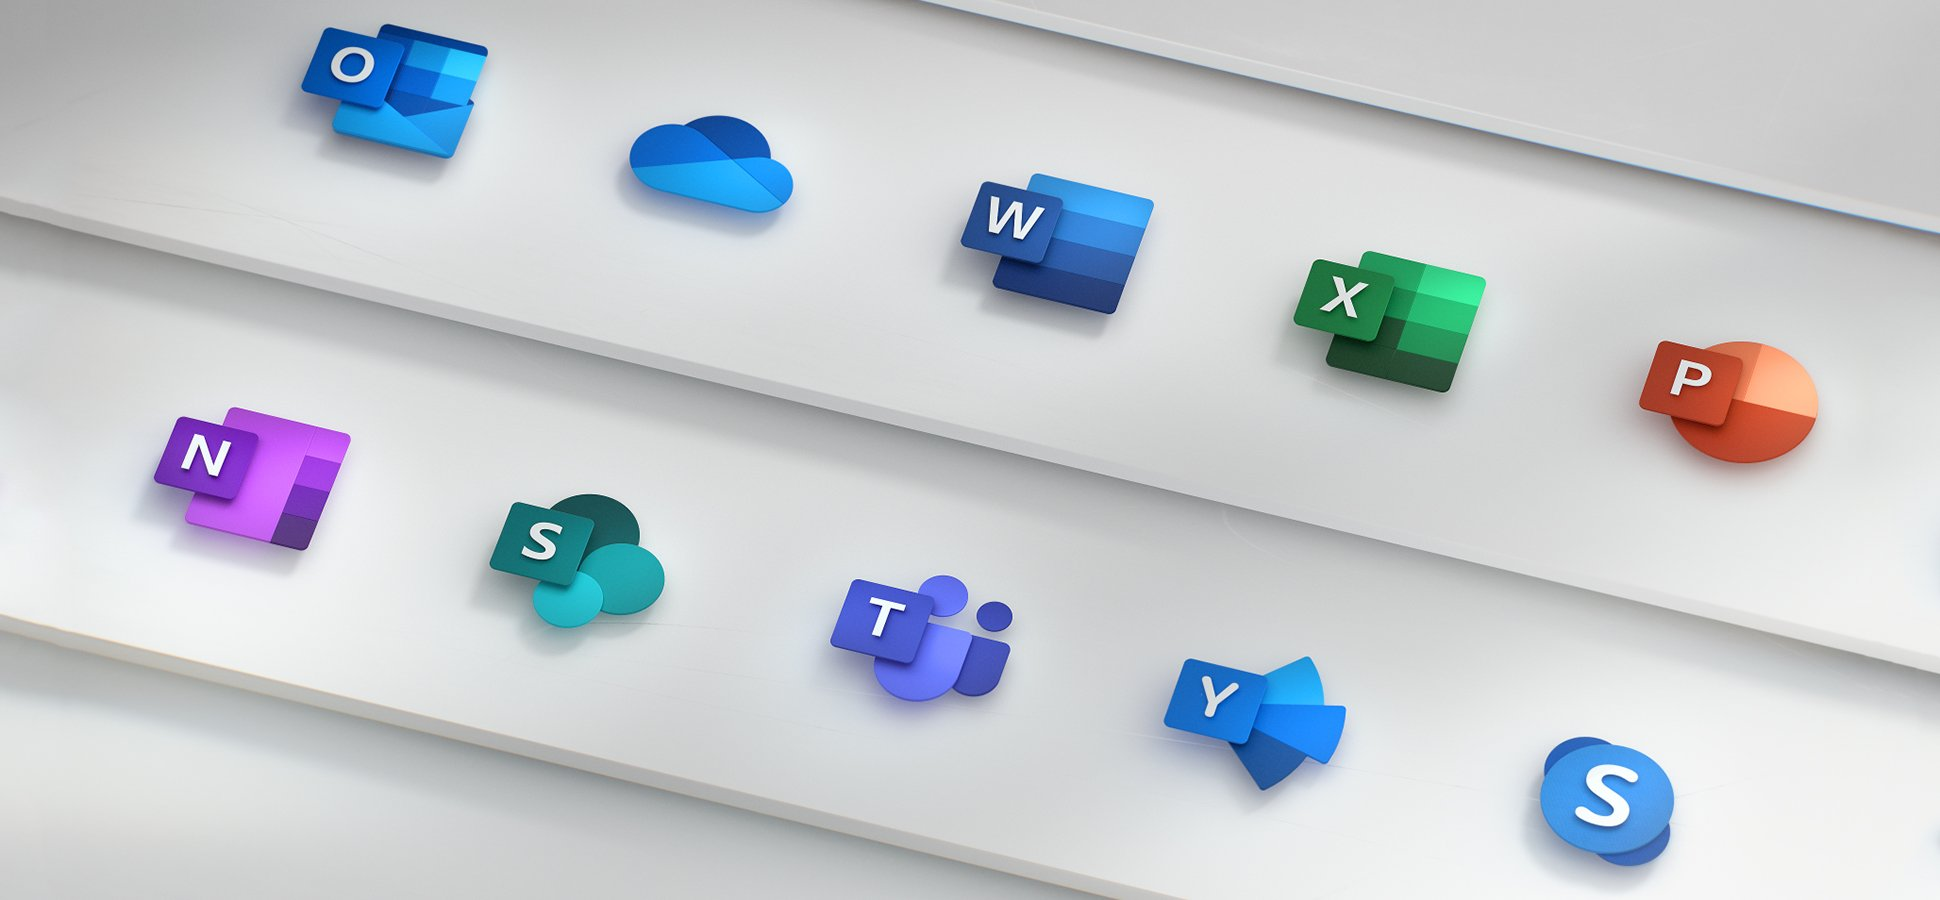 Microsoft Took an Entire Year to Design the New Office Icons. Here's What They Learned (You Decide How Much You Like Them)